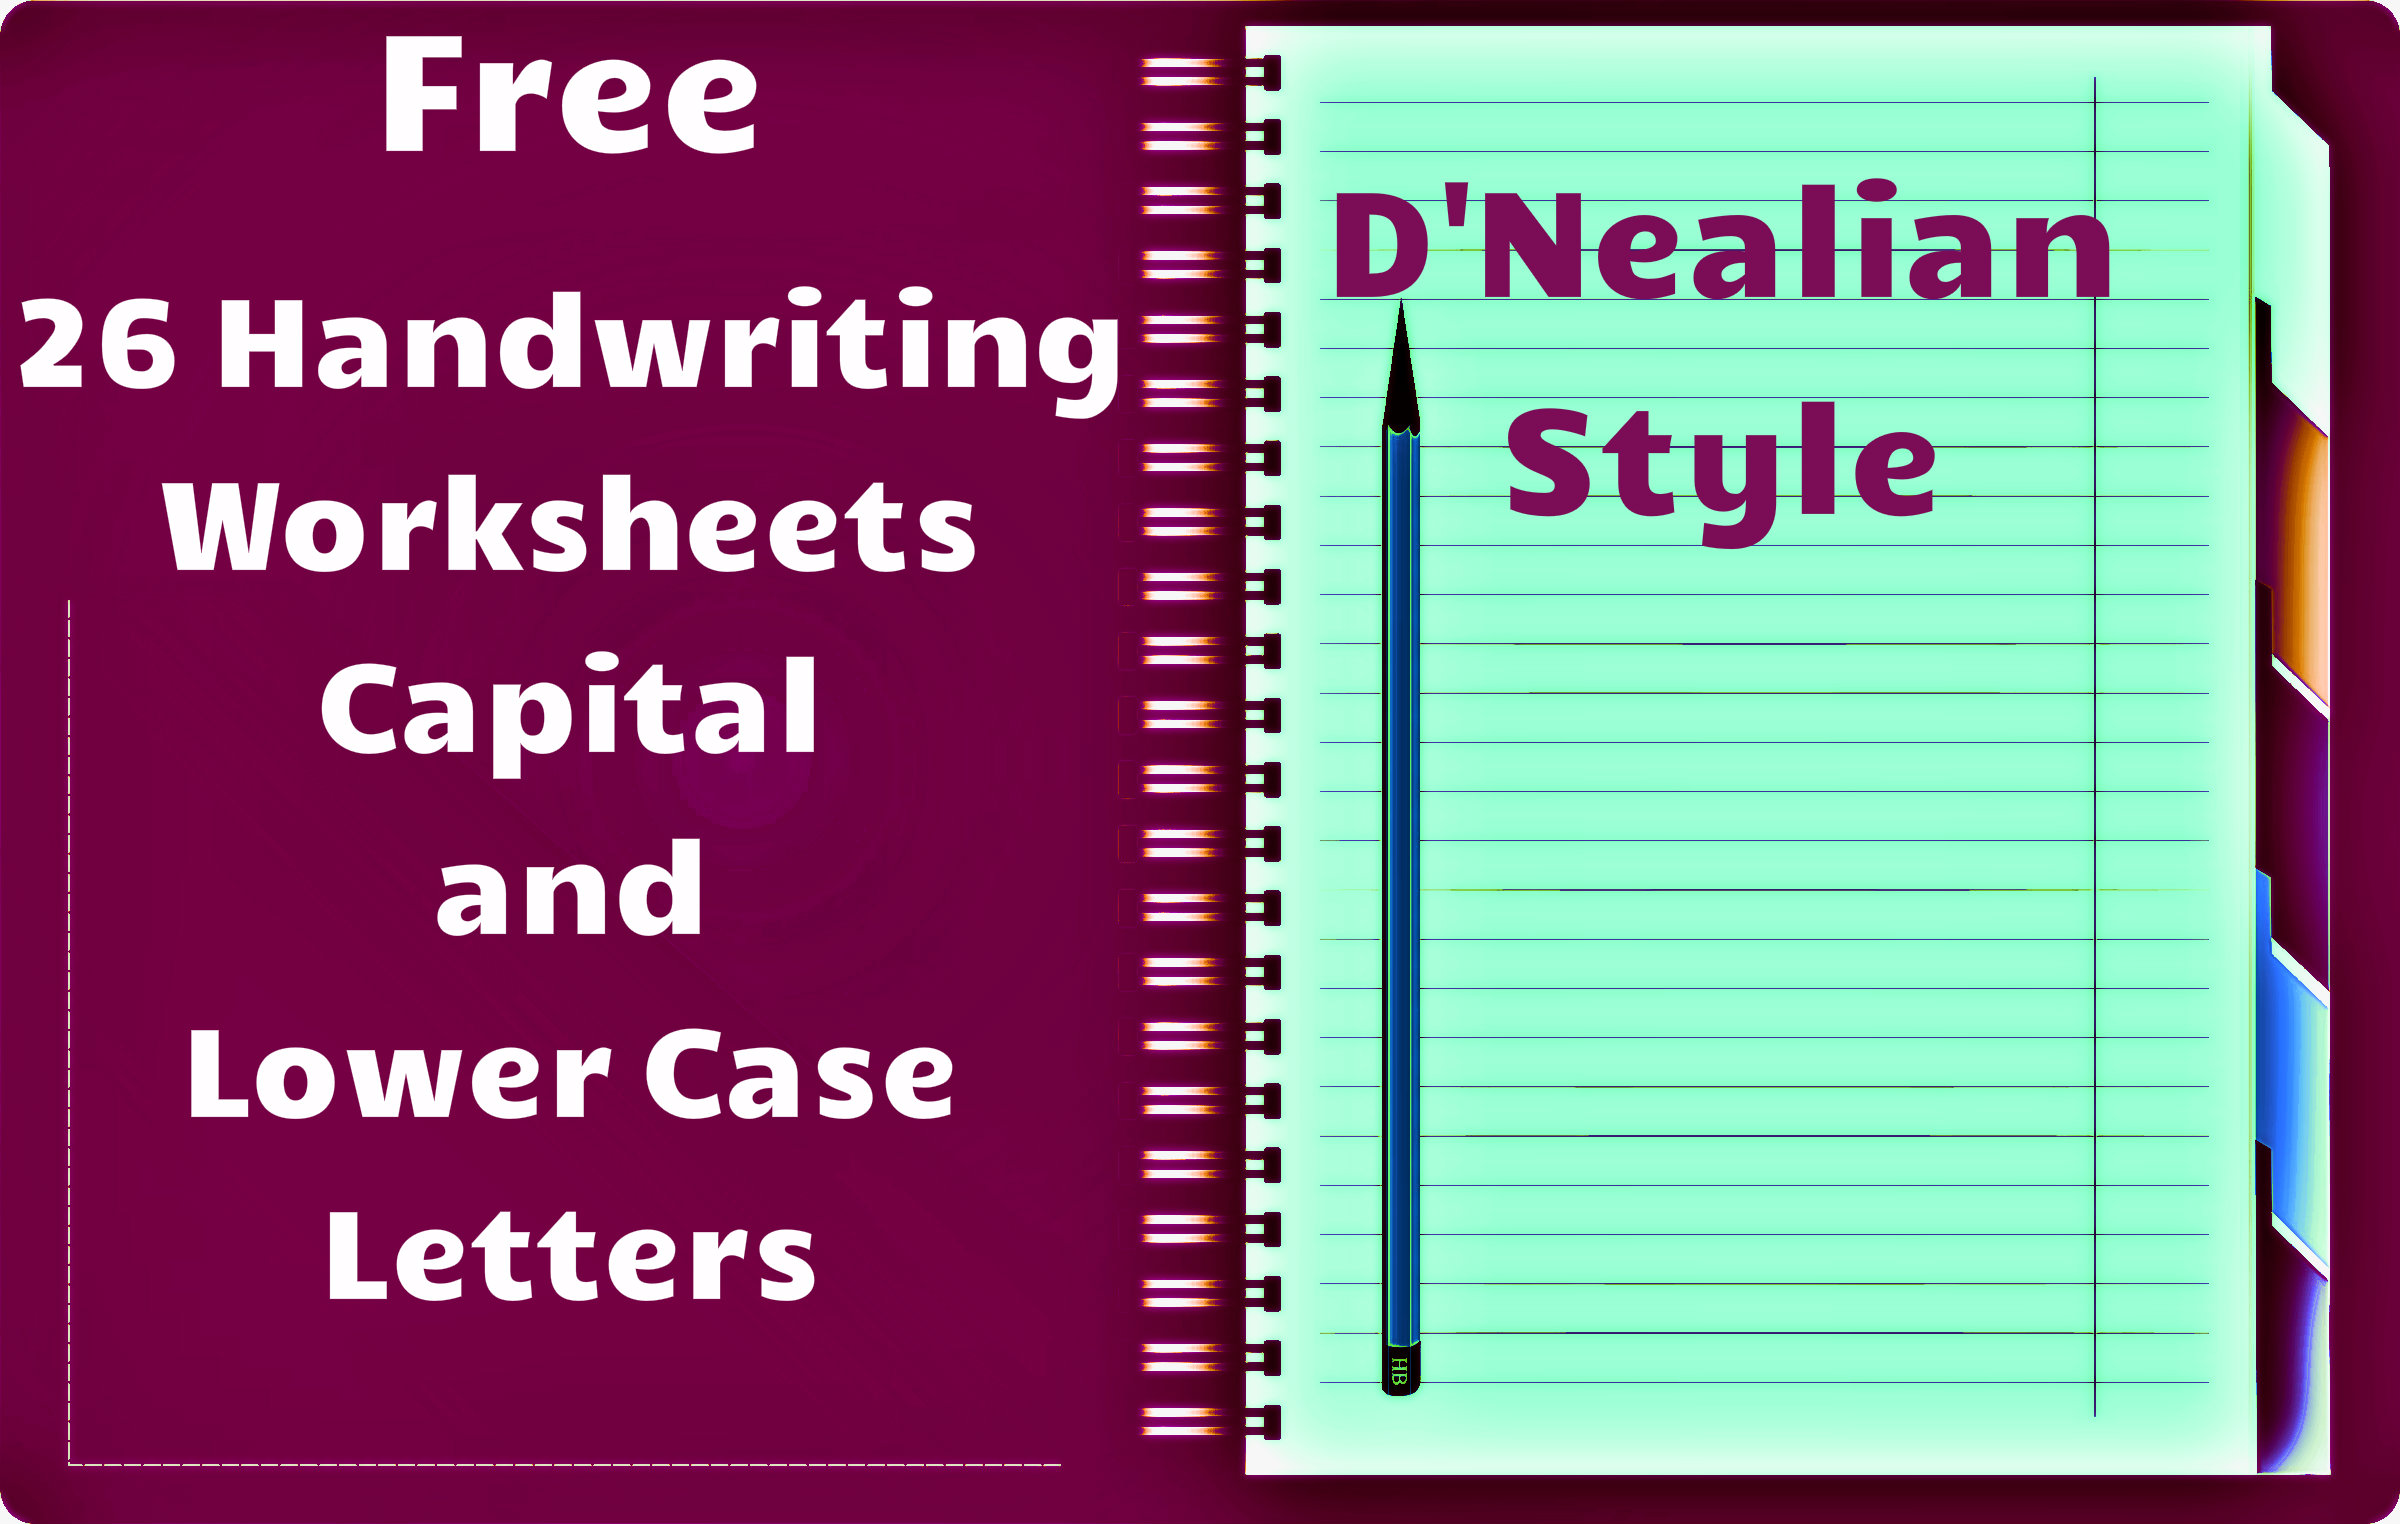 Worksheets D Nealian Handwriting Worksheets Printable free handwriting worksheets dnealian style